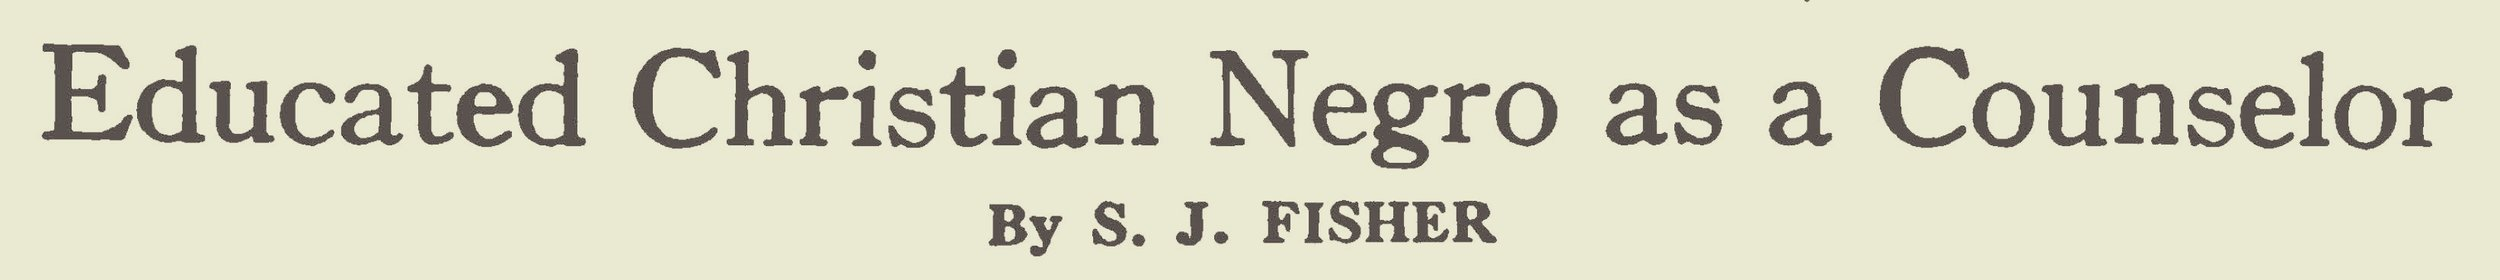 Fisher, Samuel Jackson, Educated Christian Negro as a Counselor Title Page.jpg